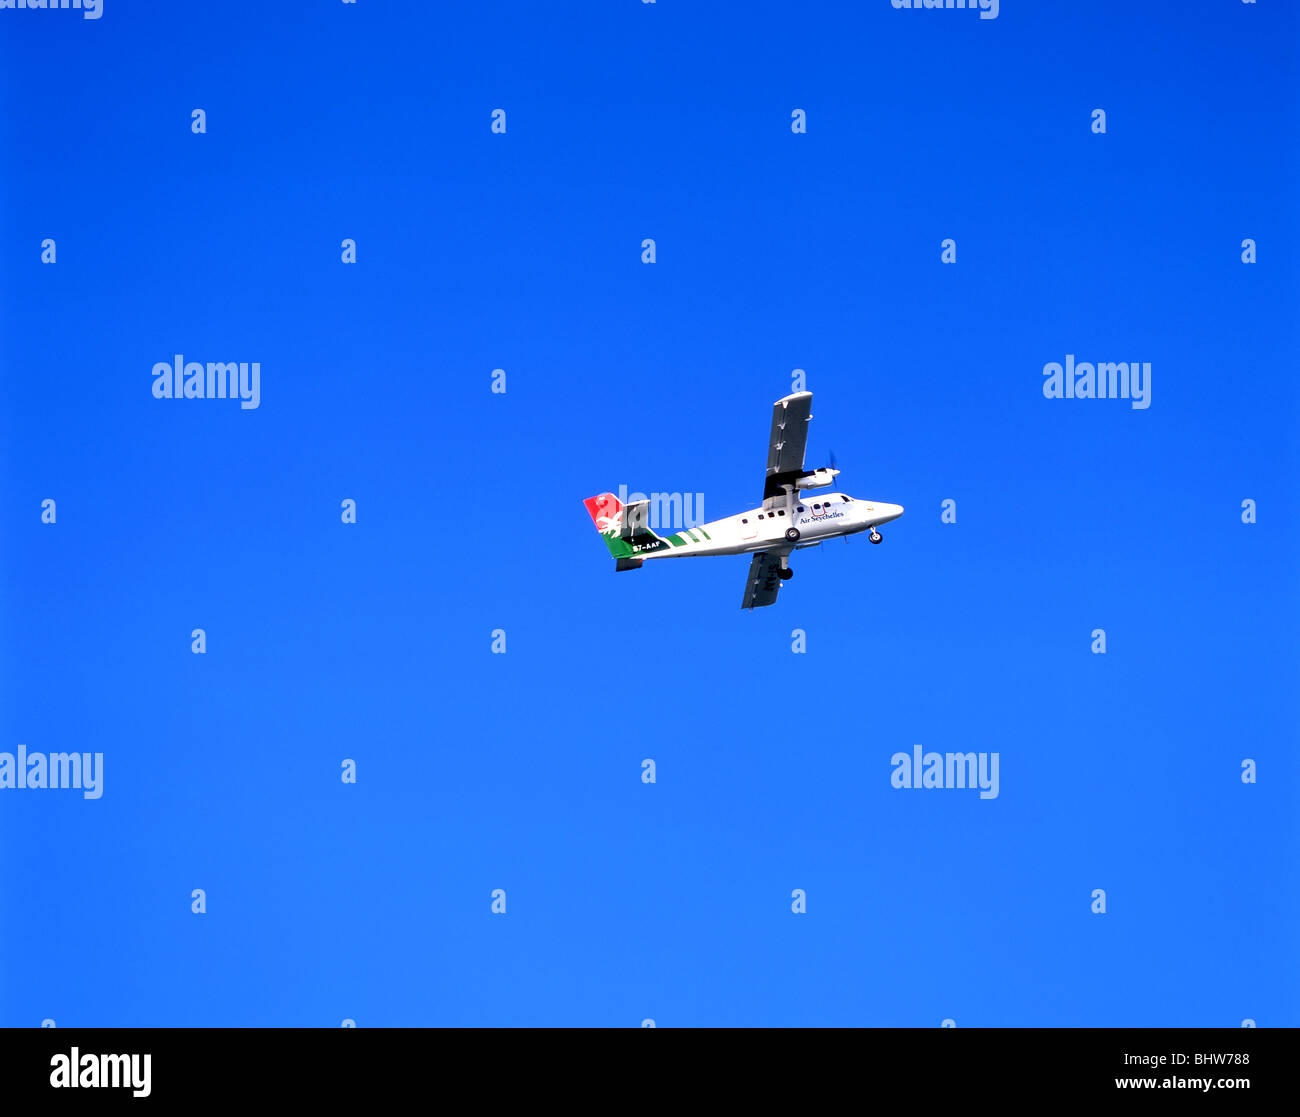 Inter-Island aircraft taking off, Praslin Island, Republic of Seychelles - Stock Image